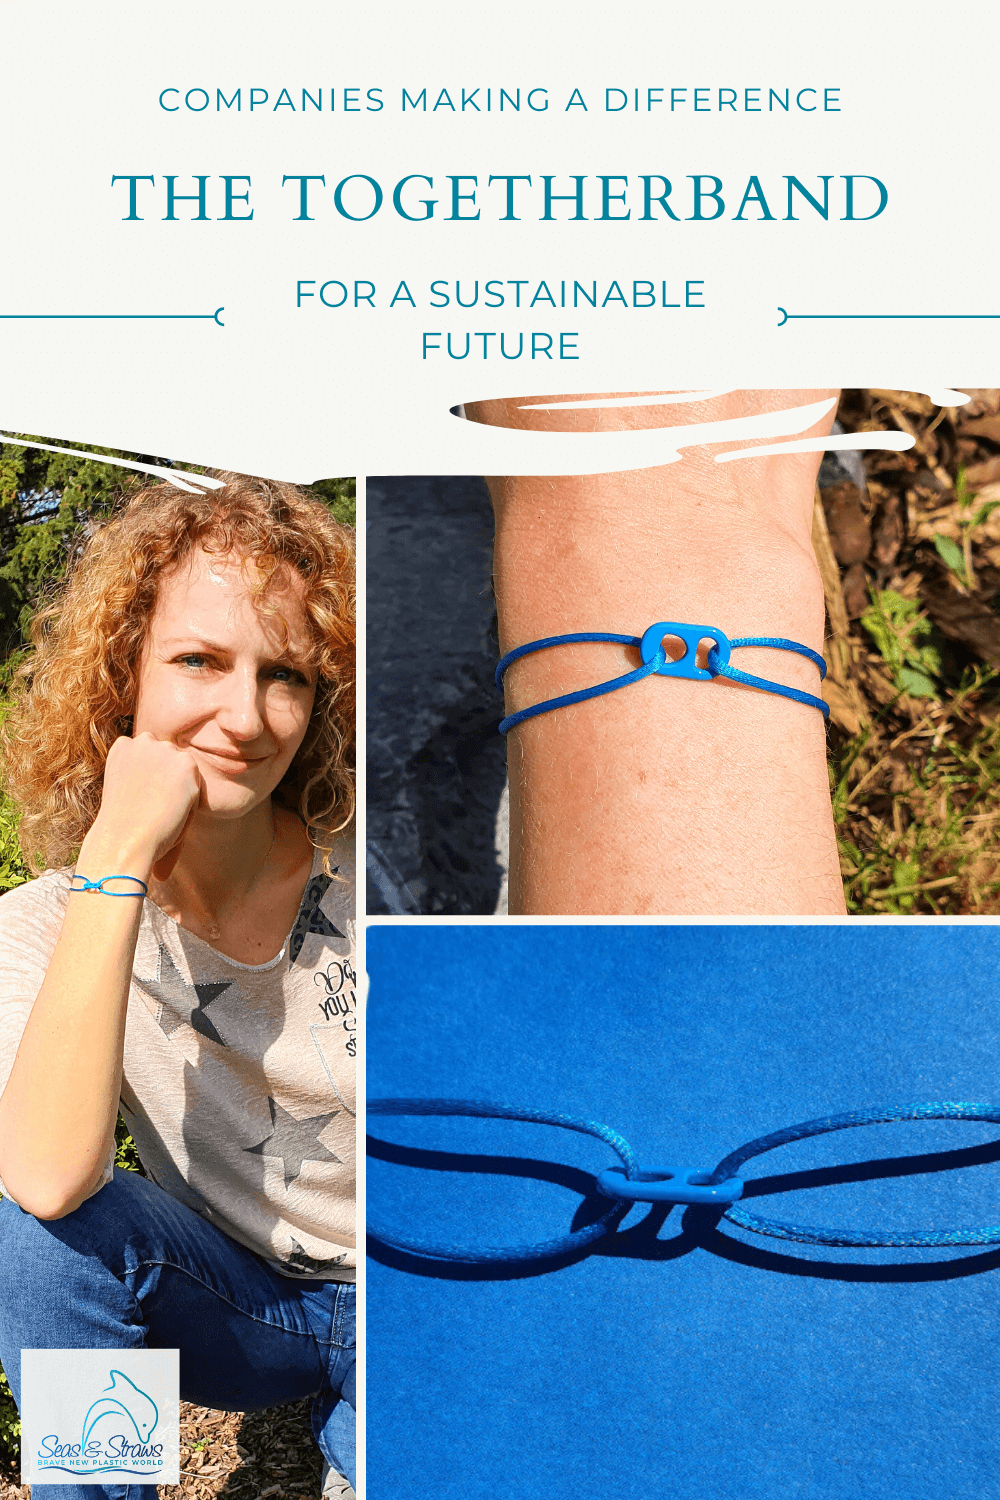 Togetherband - Together for a healthy planet and a sustainable future. Photo: Seas & Straws